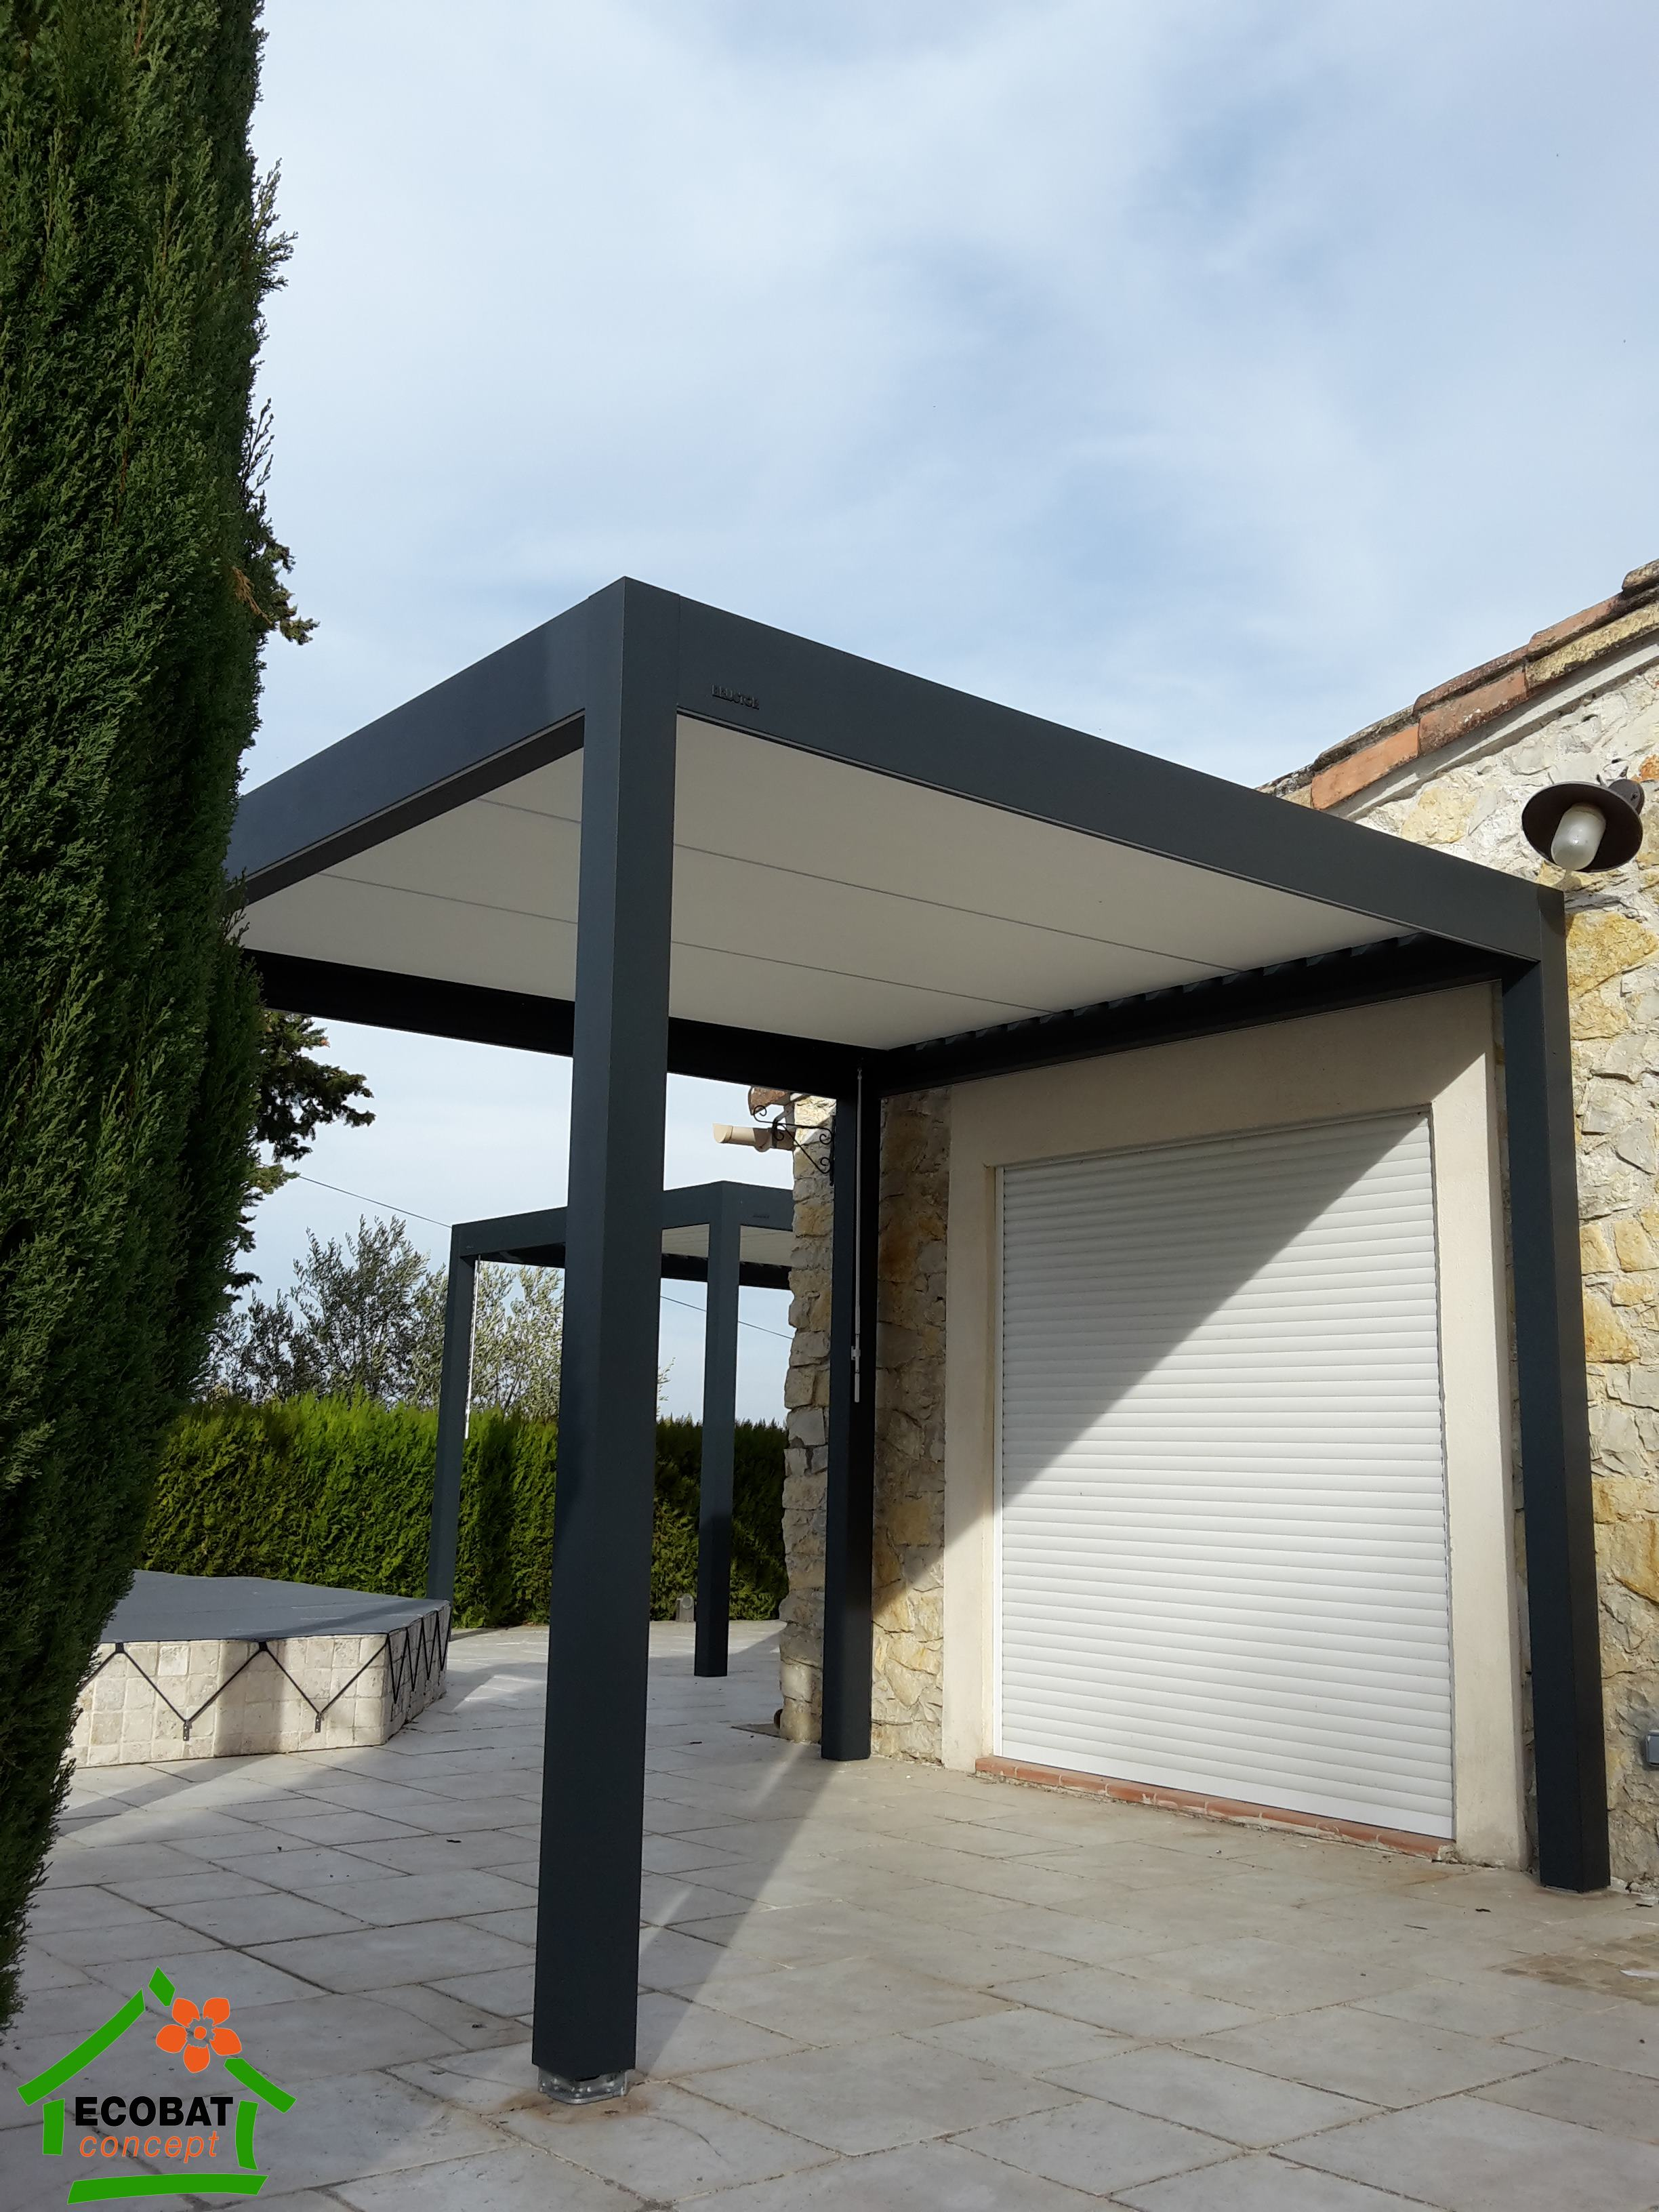 Dions pergola bioclimatique manuelle b150 vente for Toiture bioclimatique